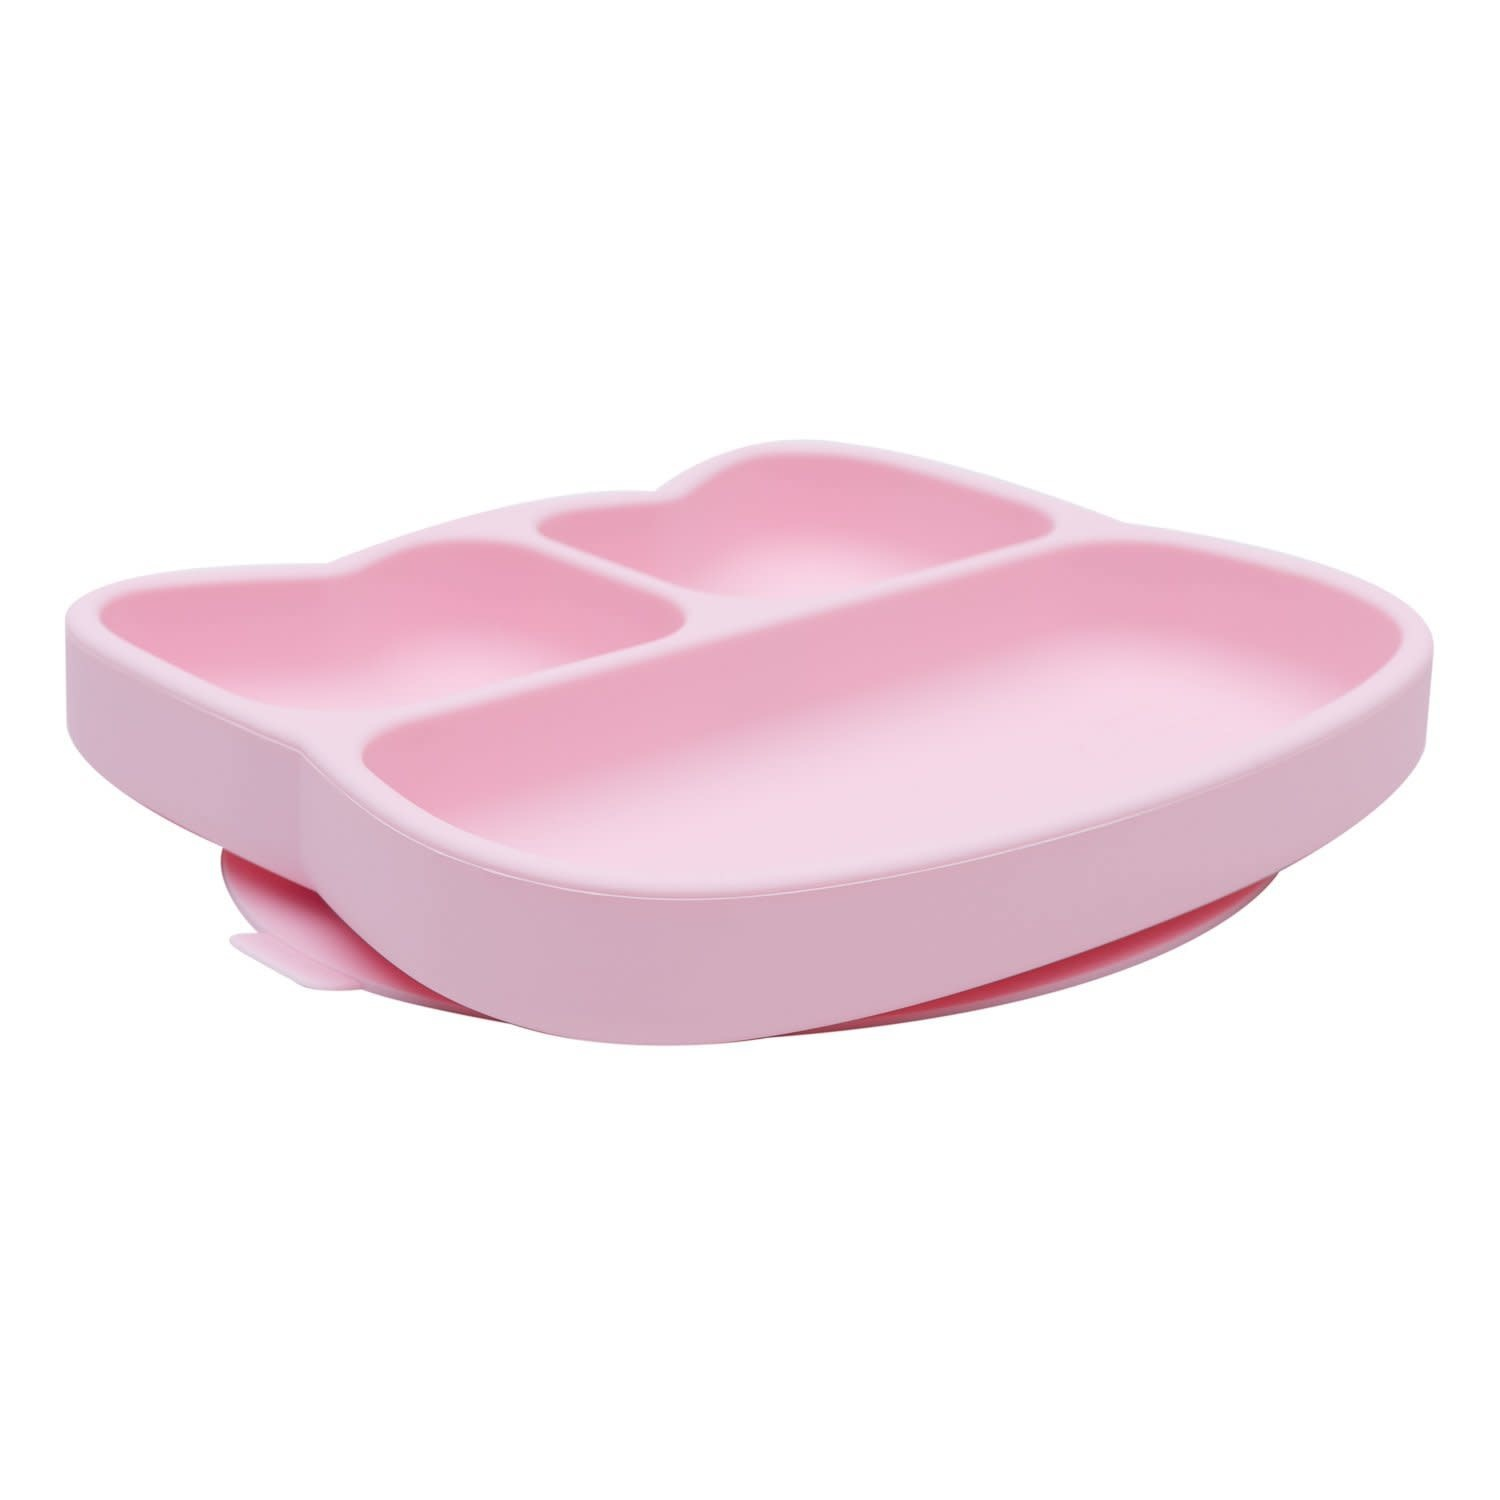 We Might Be Tiny Cat Stickie Plate - Powder Pink